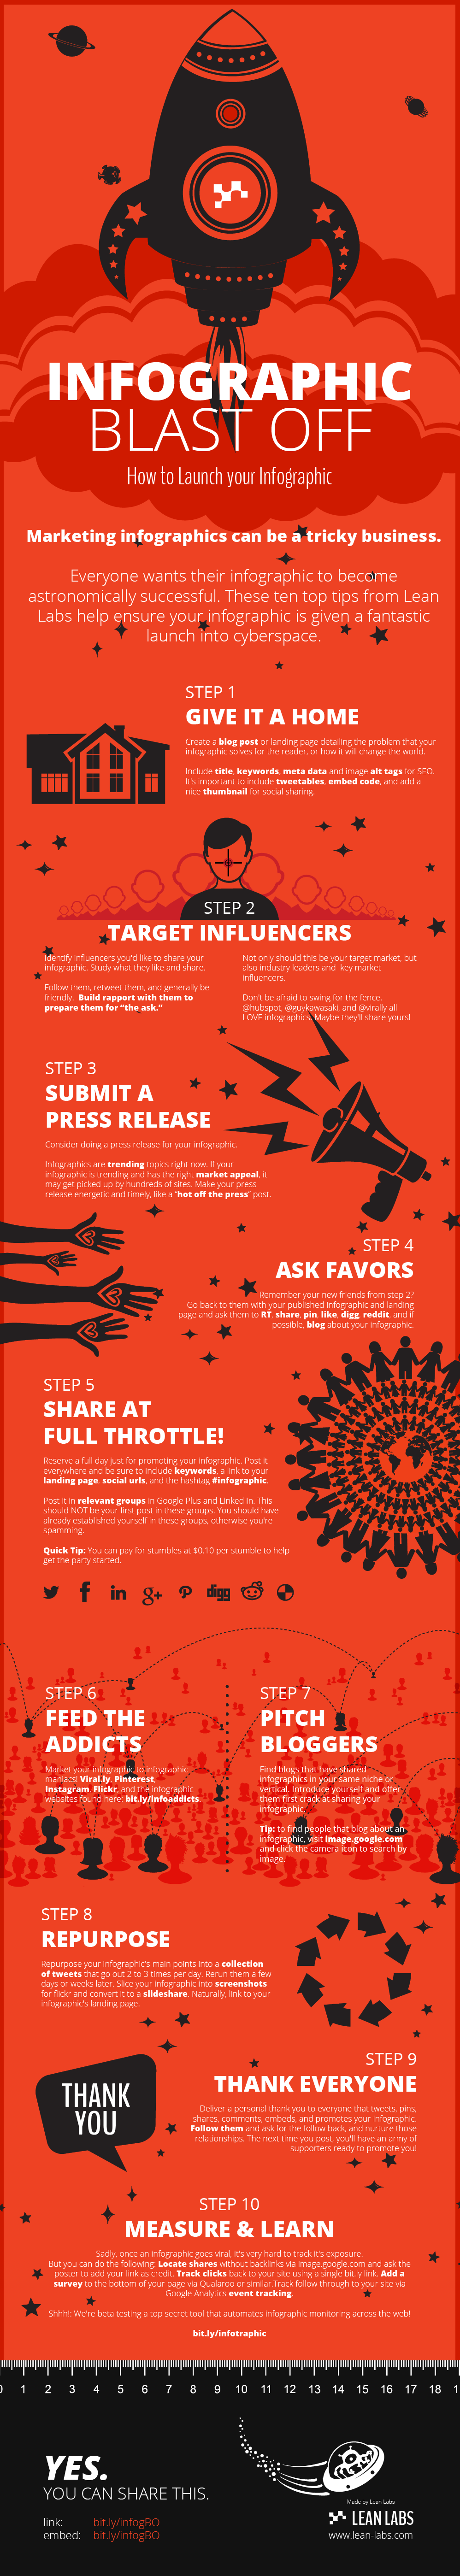 Infographic Blast Off: How To Launch Your Infographic